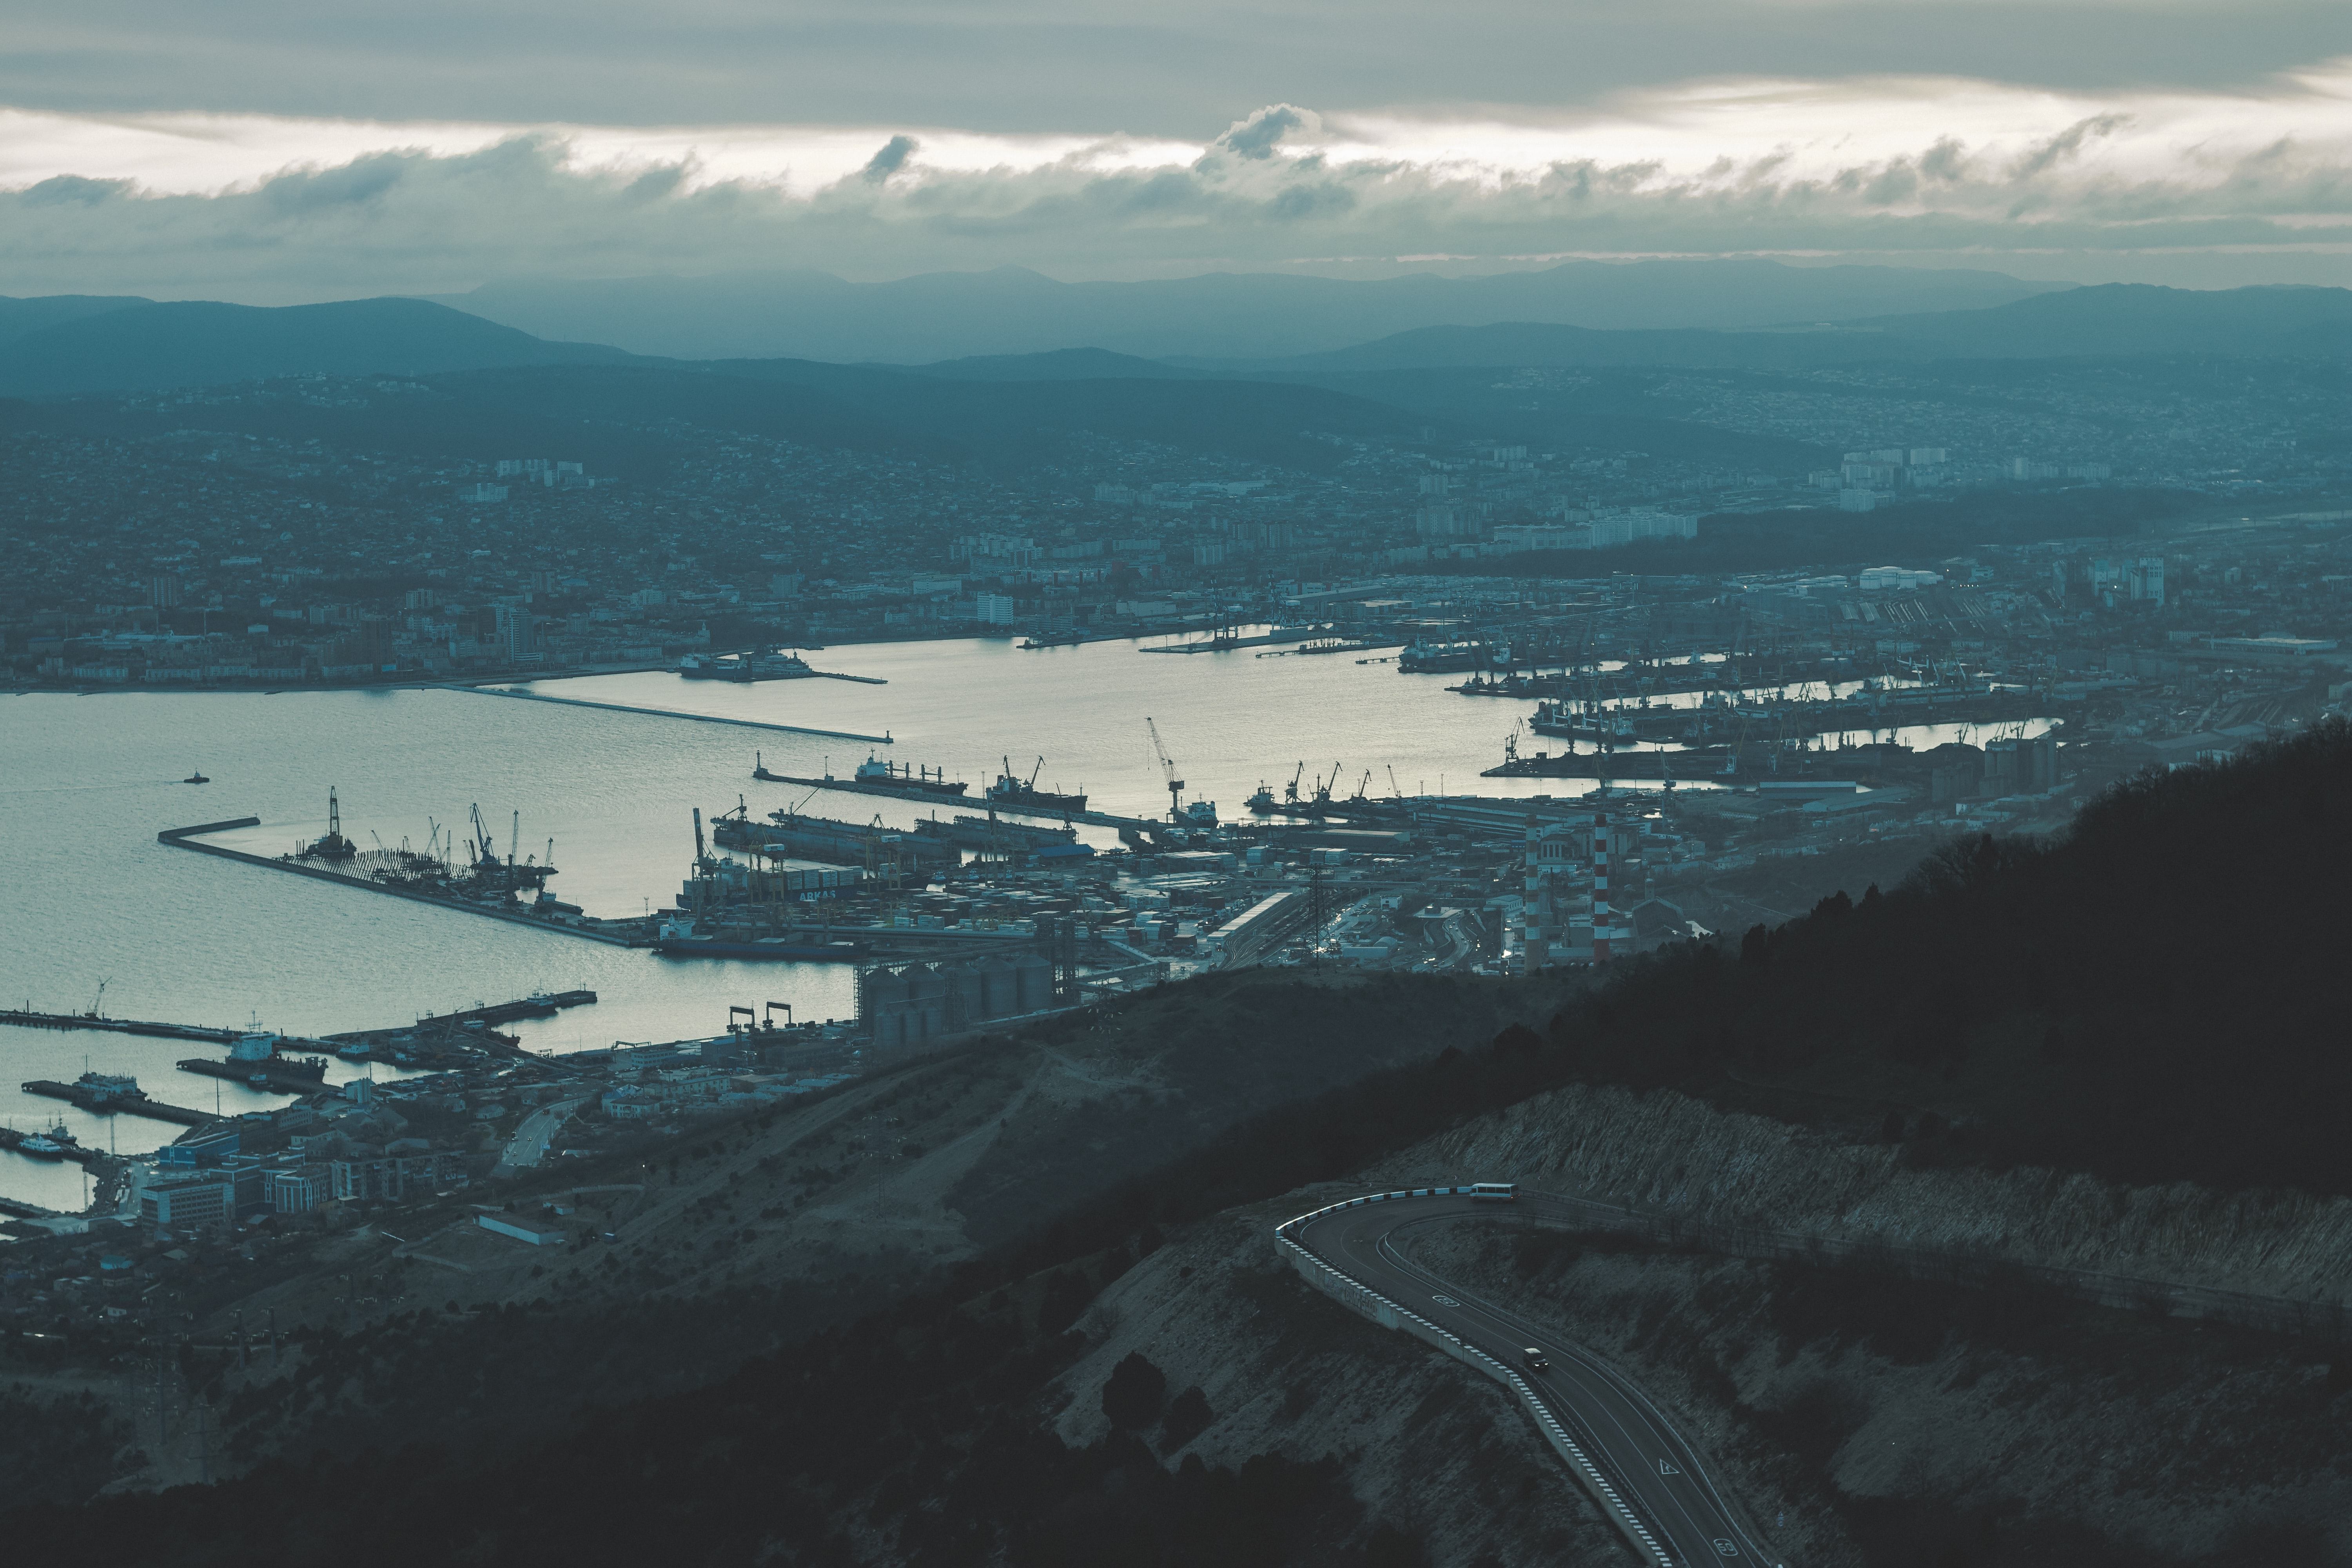 aerial photography of port near hill